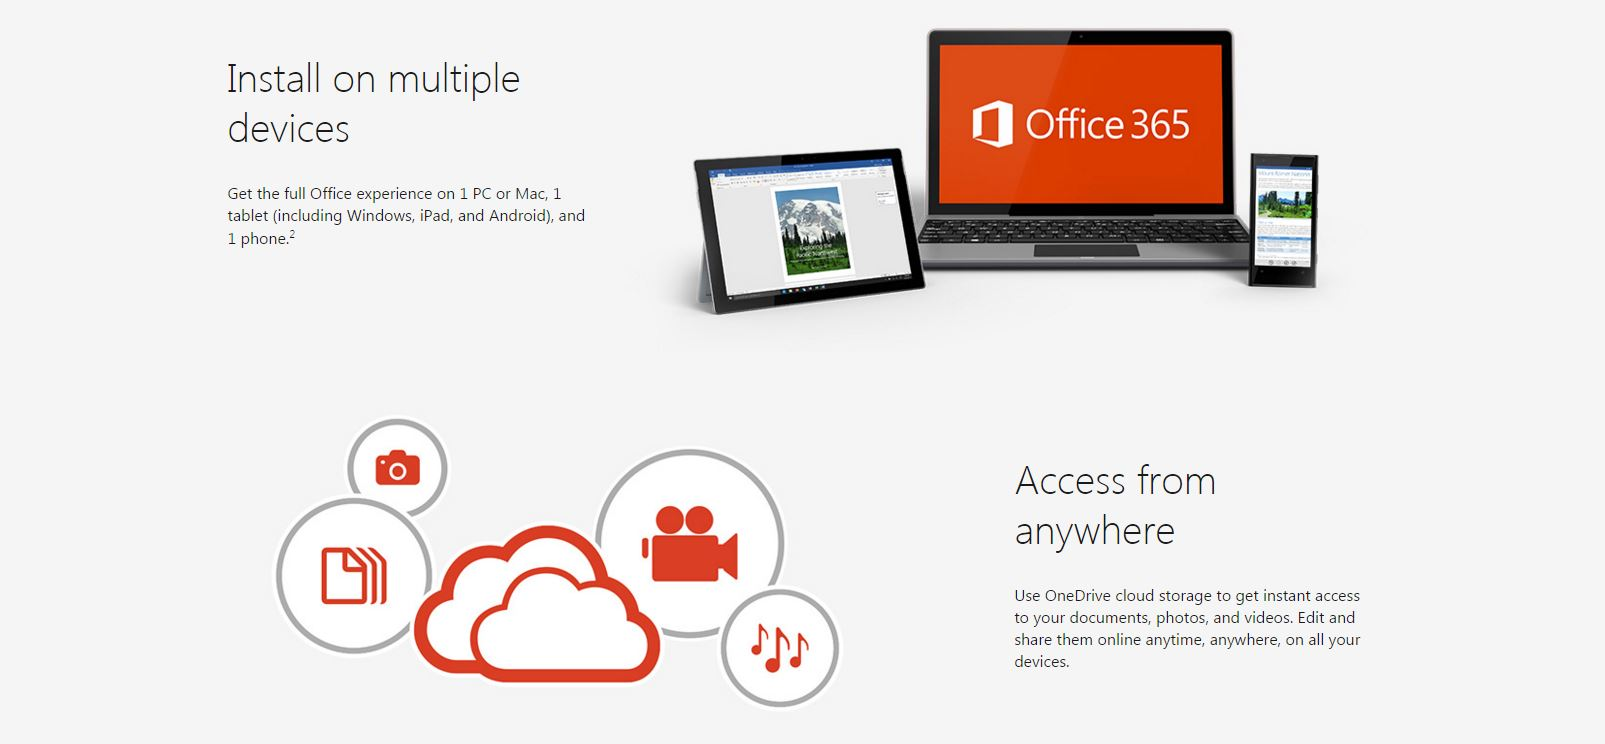 Microsoft Office for multiple devices